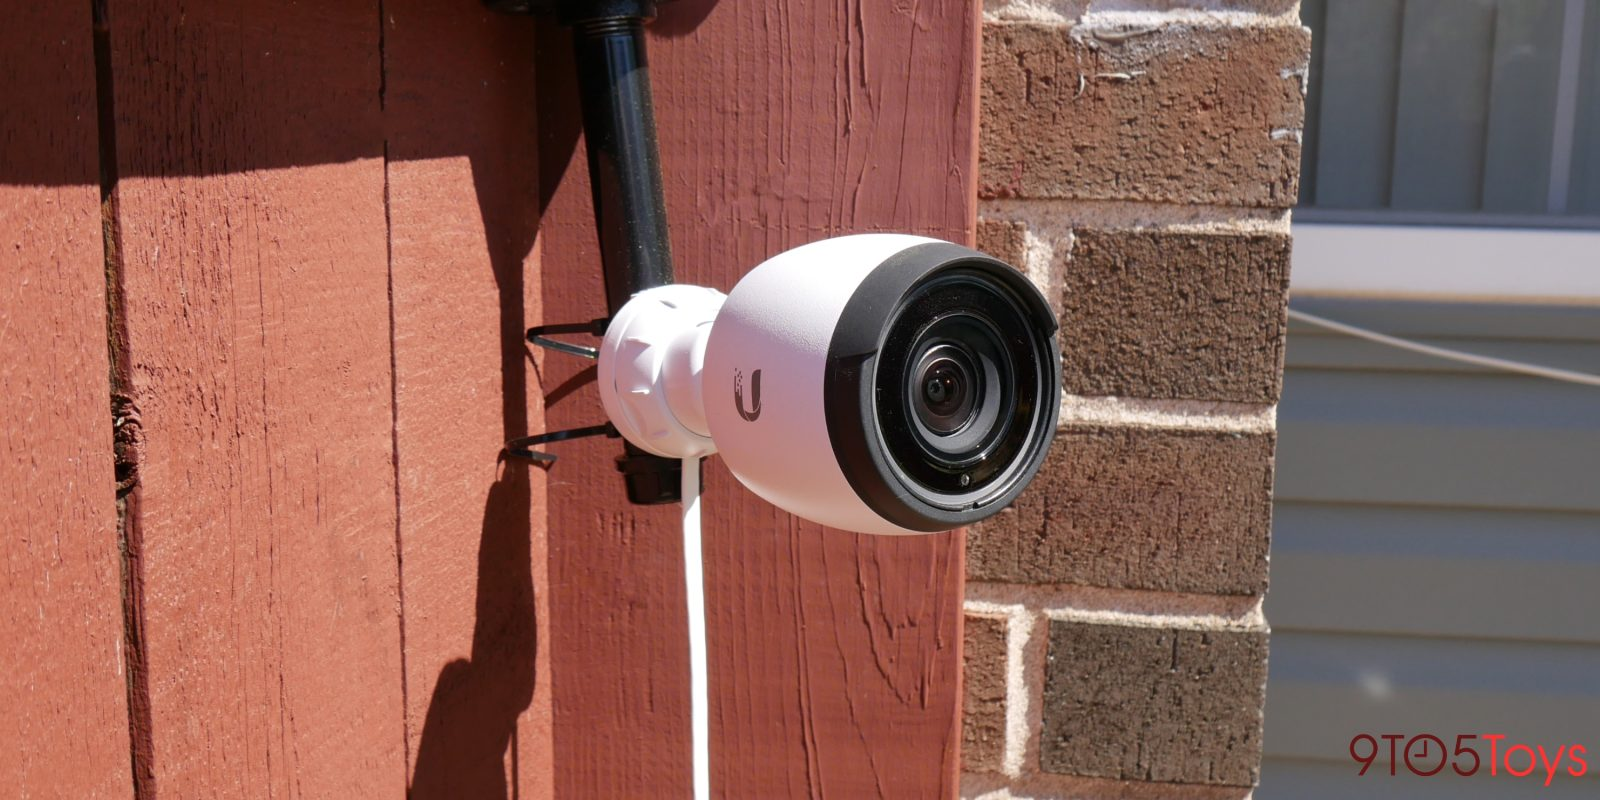 UniFi Protect Security Camera: getting started Ubiquiti's NVR - 9to5Toys